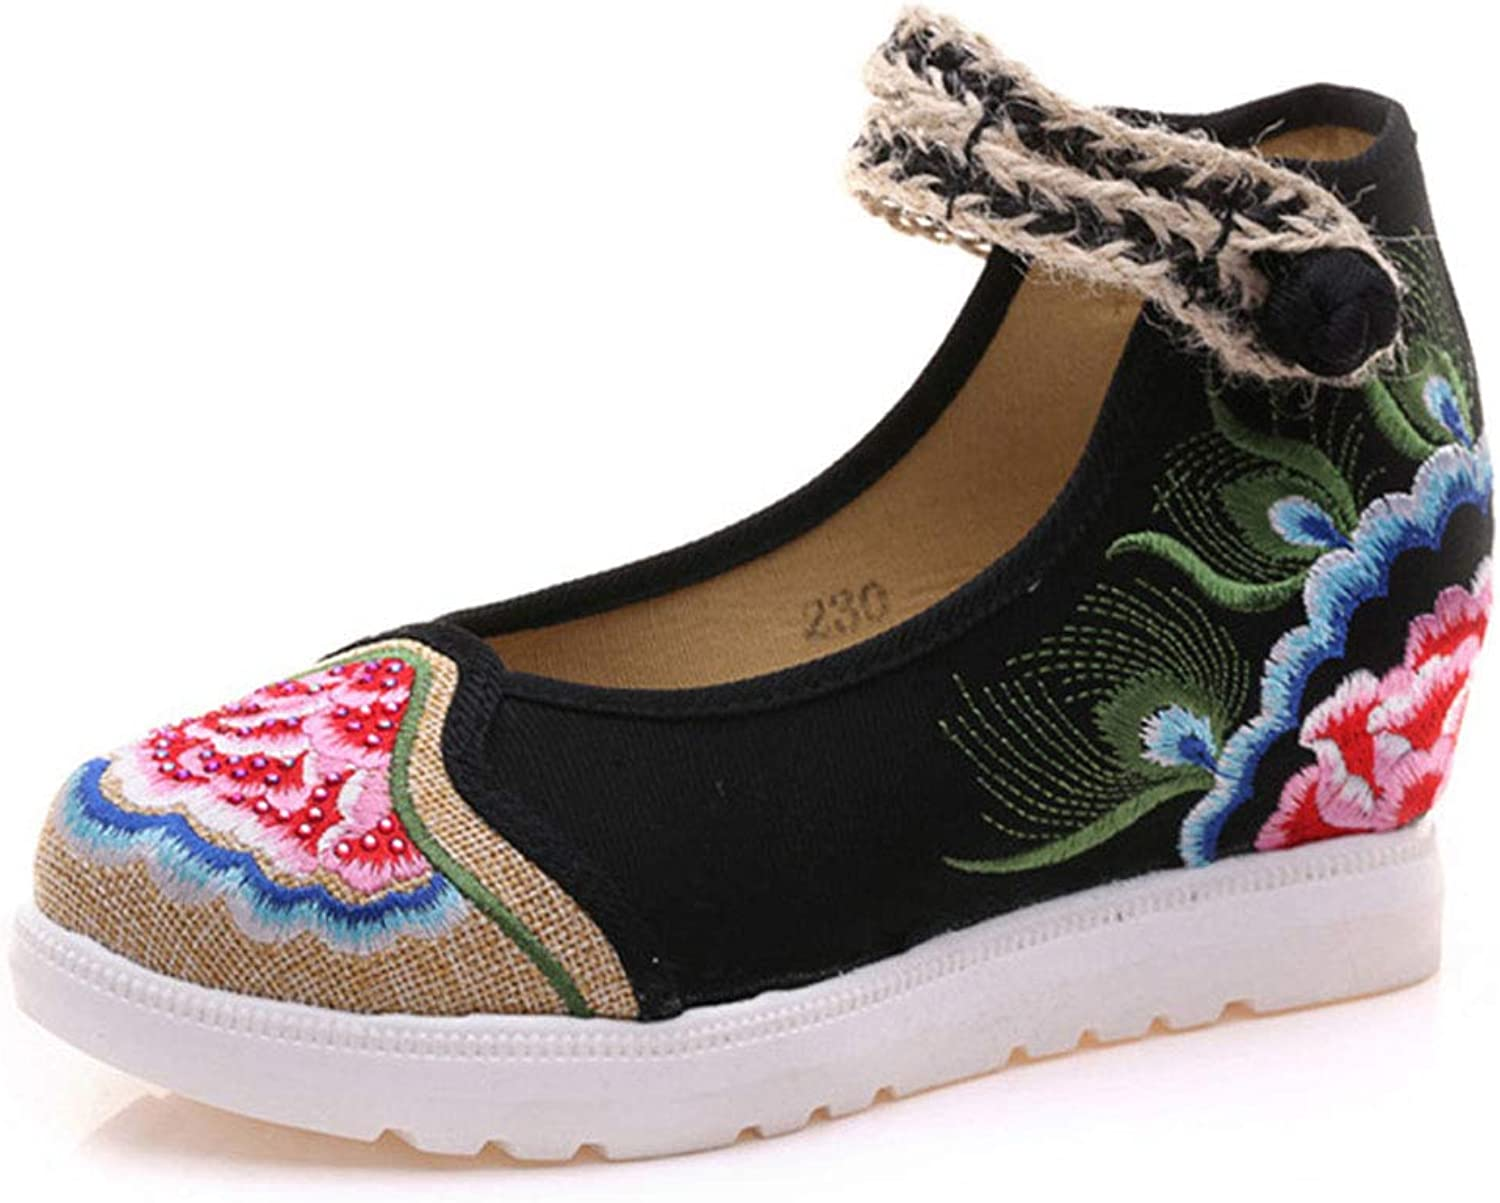 Women's High Heeled Embroidered shoes Fashion Wedge shoes National Wind Breathable Casual Cloth shoes (color   Black, Size   38)